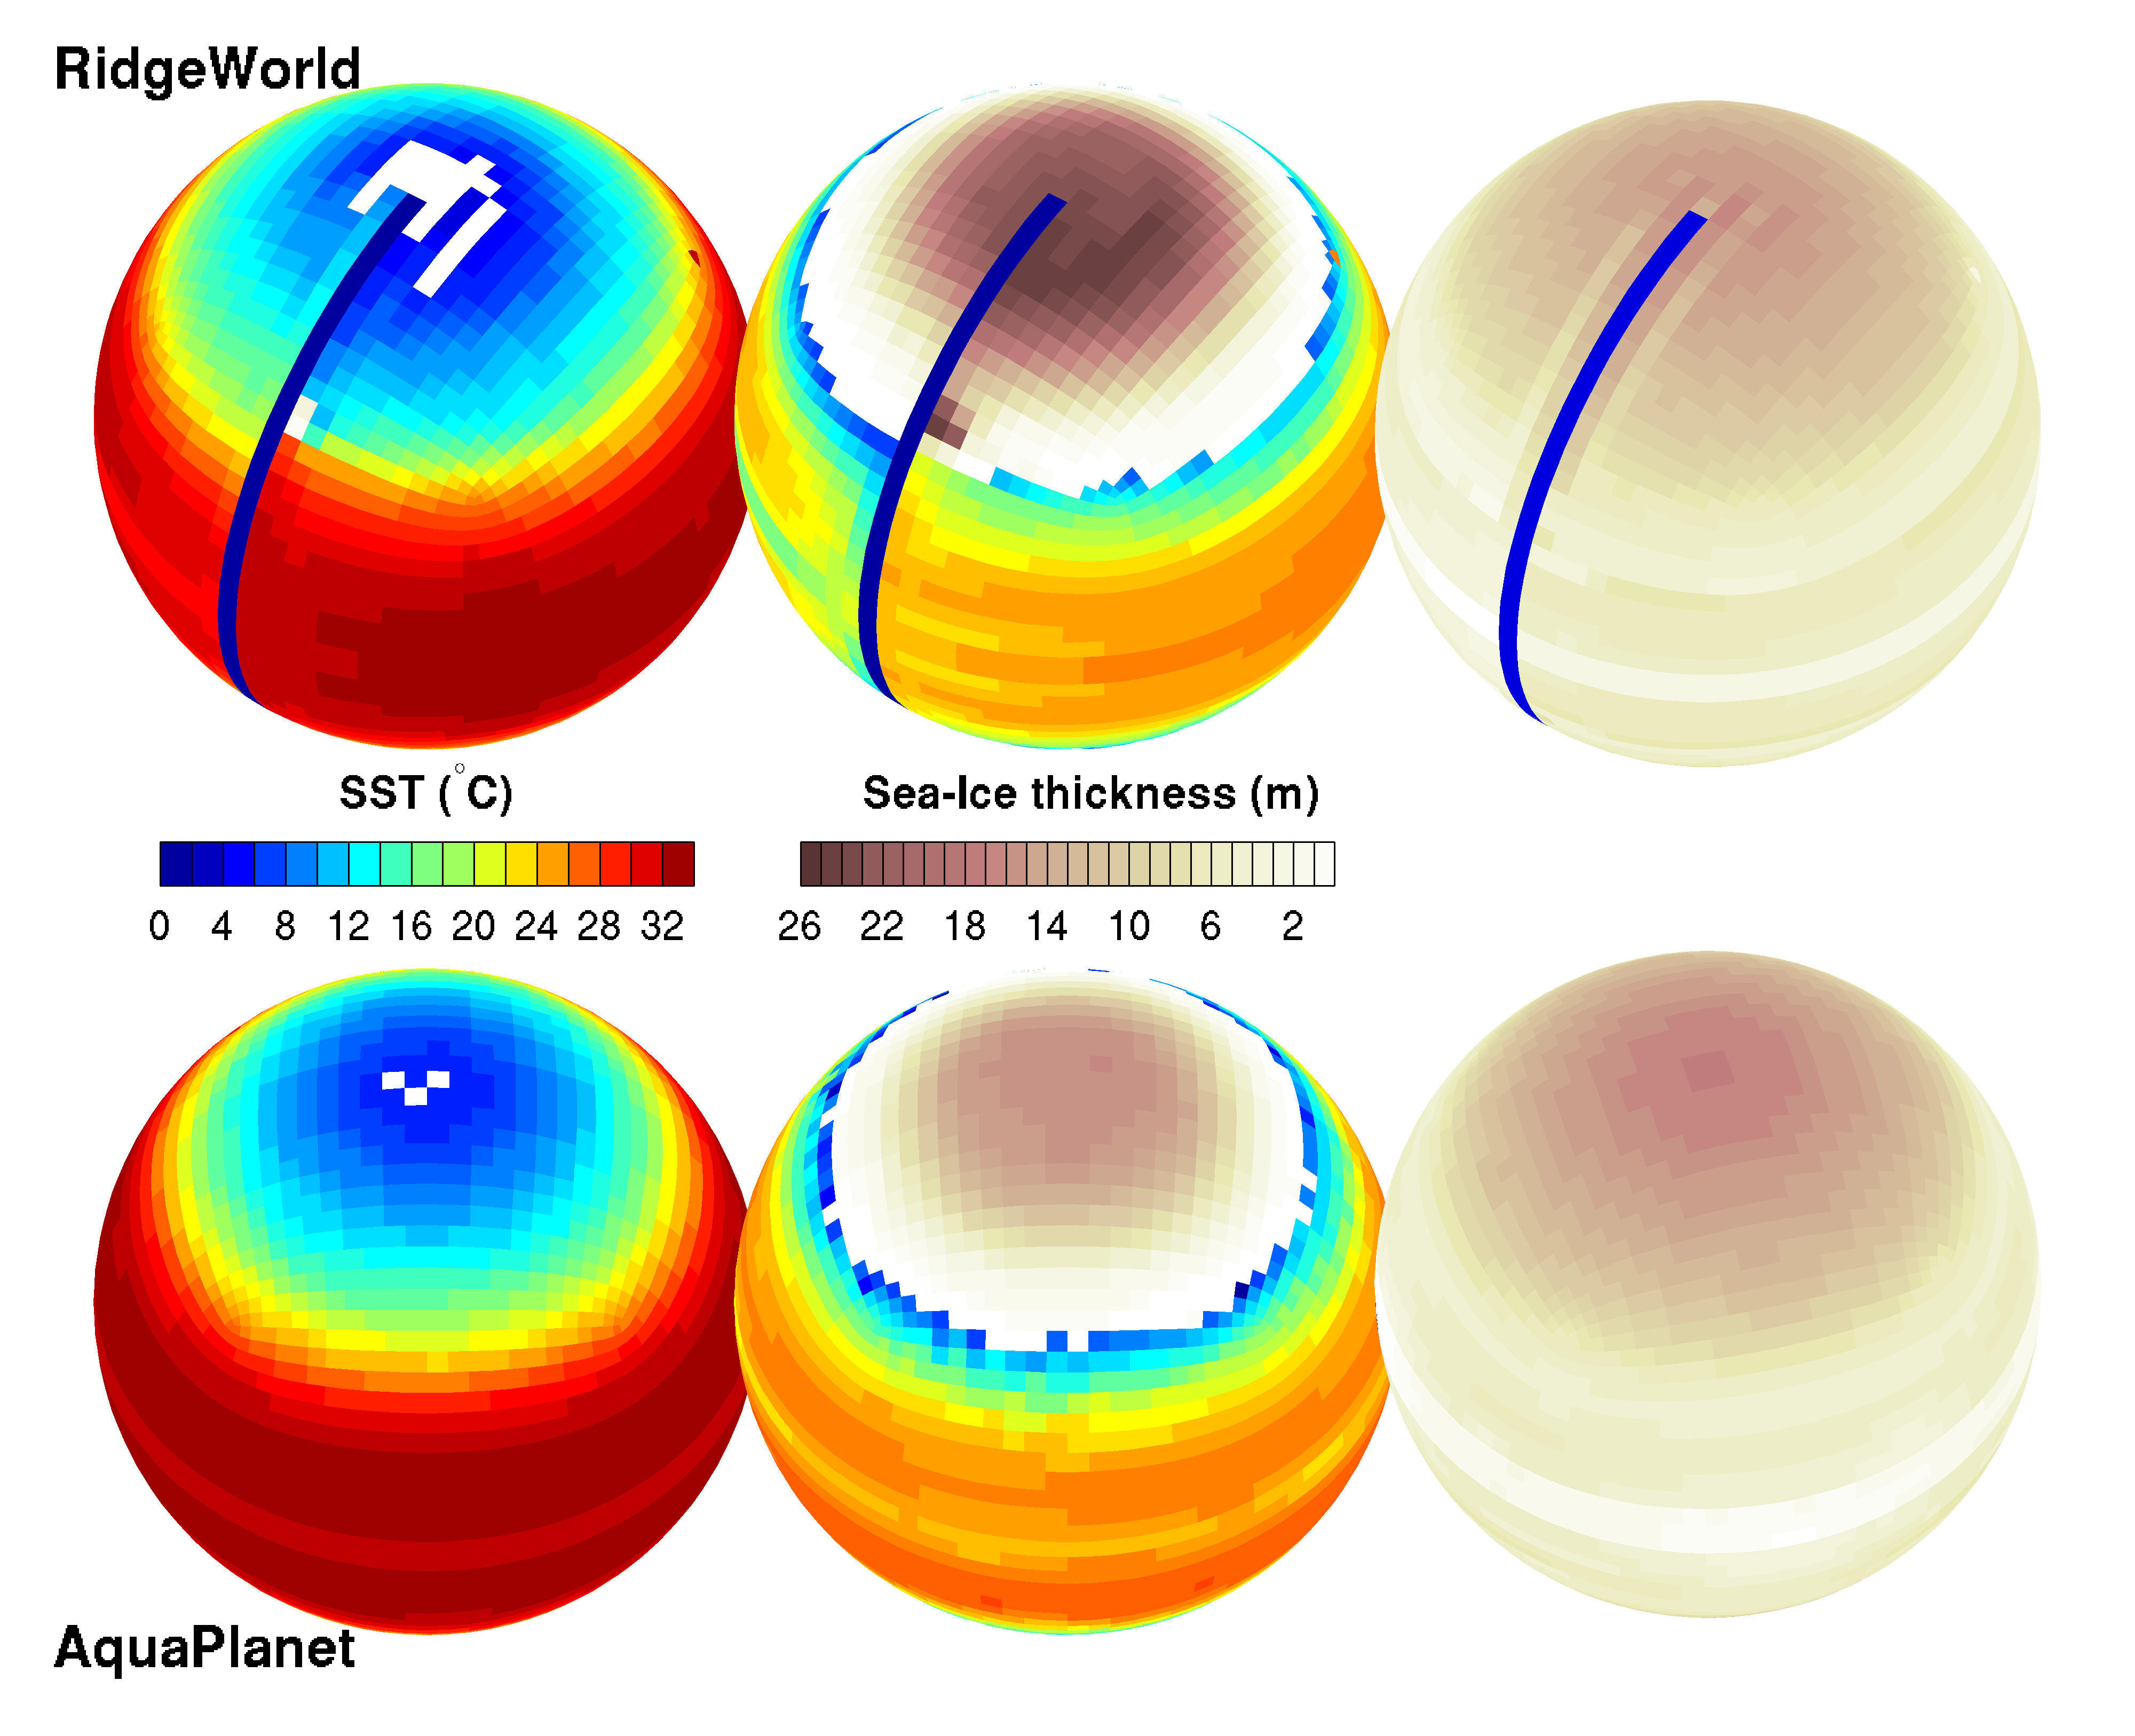 Caption: SST and sea-ice thickness in Ridge (top) and Aqua (bottom) for the Warm (left), Cold (middle) and Snowball (right) states. In the Snowball state, the planet is covered with about a hundred meters of ice and thickening toward the poles. While low-order climate models have been found to exhibit multiple equilibria of the kind found by Ferreira and co-workers, this is the first time such equilibria have been revealed in a model with so many degrees of freedom ... (image source - D. Ferreira, Marshall group)